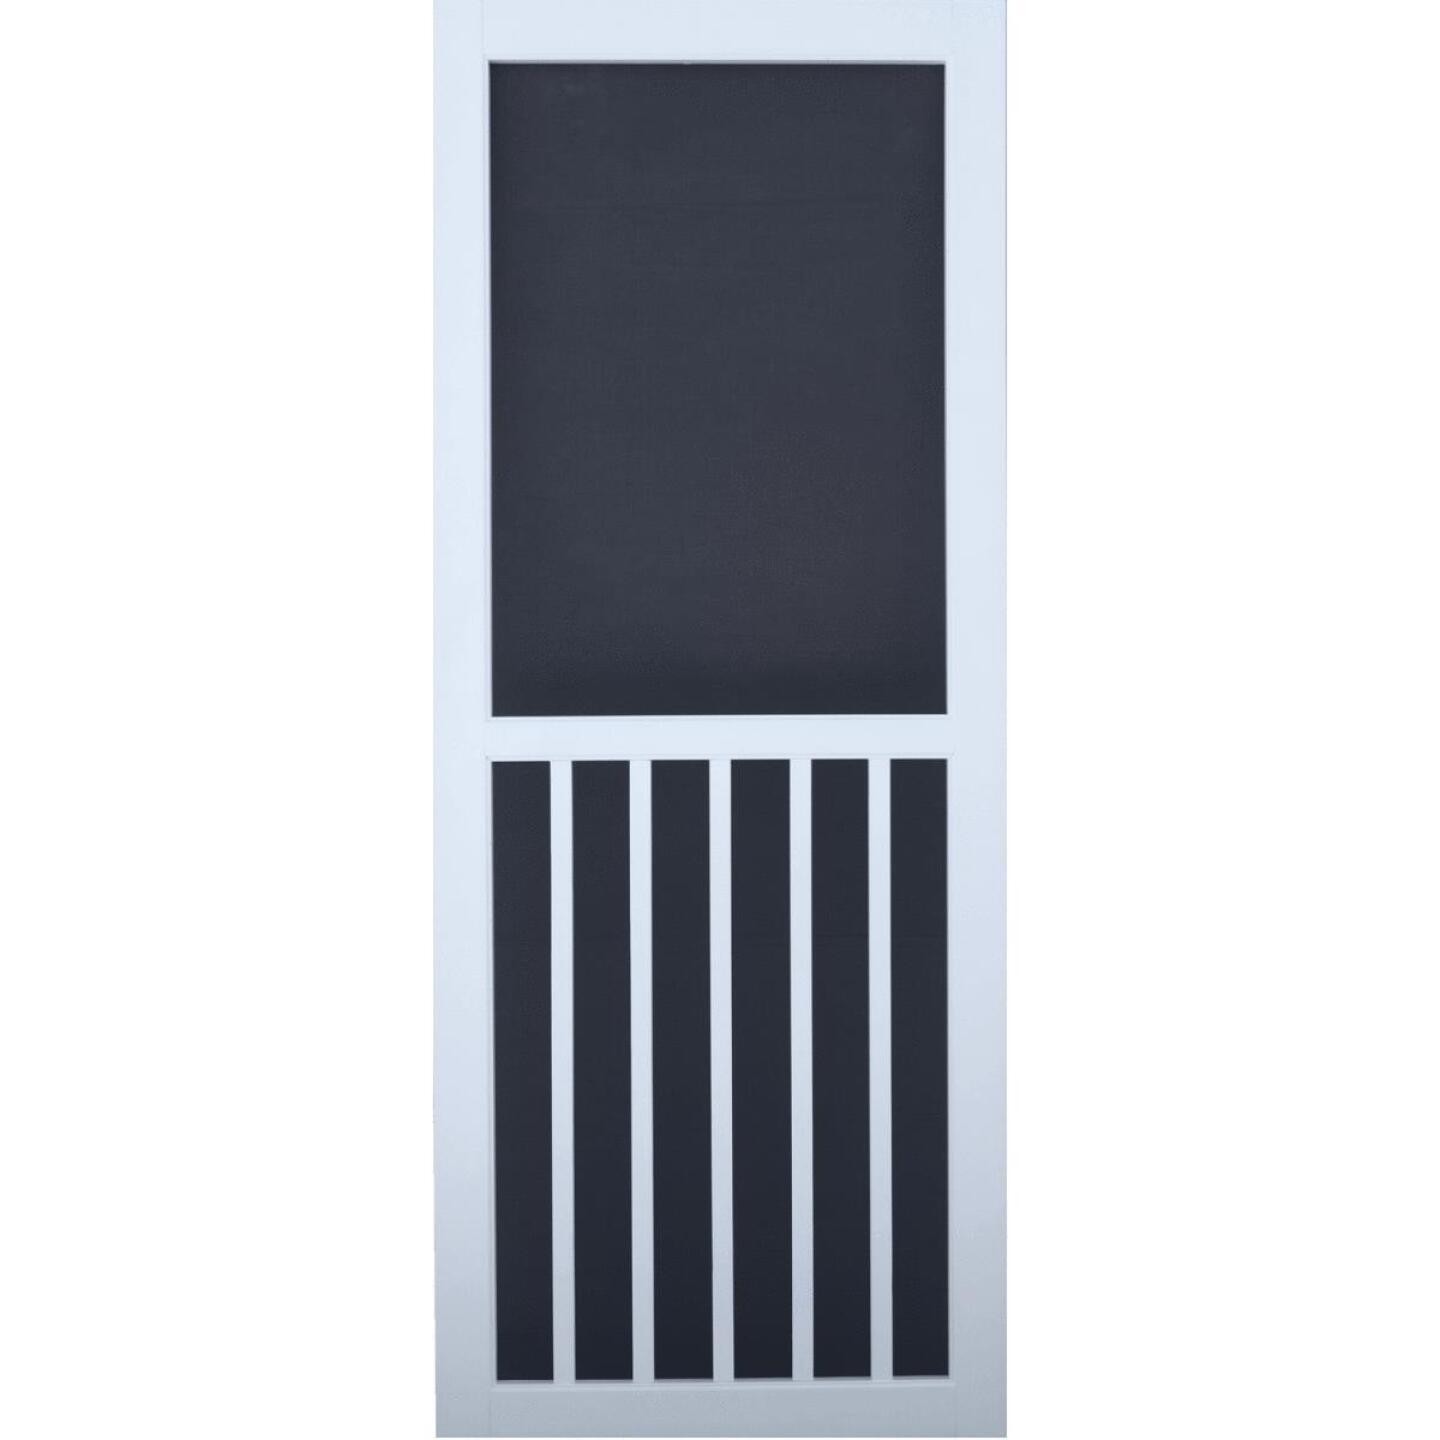 Snavely Kimberly Bay 32 In. W. x 80 In. H. x 1 In. Thick White Vinyl 5-Bar Screen Door Image 1